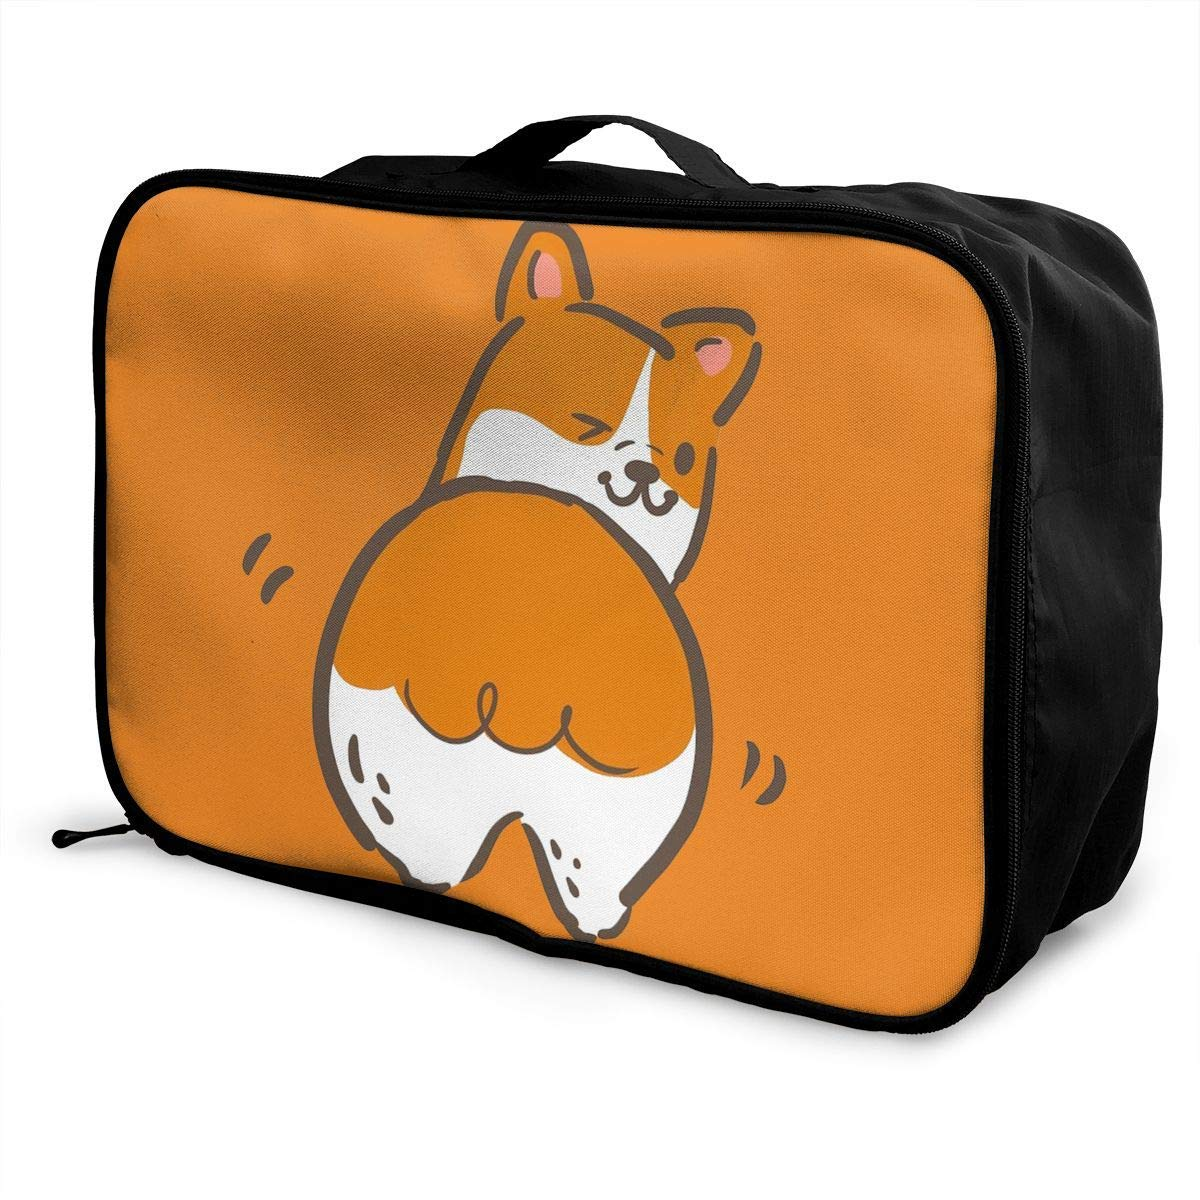 Portable Luggage Duffel Bag Cute Corgi Travel Bags Carry-on In Trolley Handle